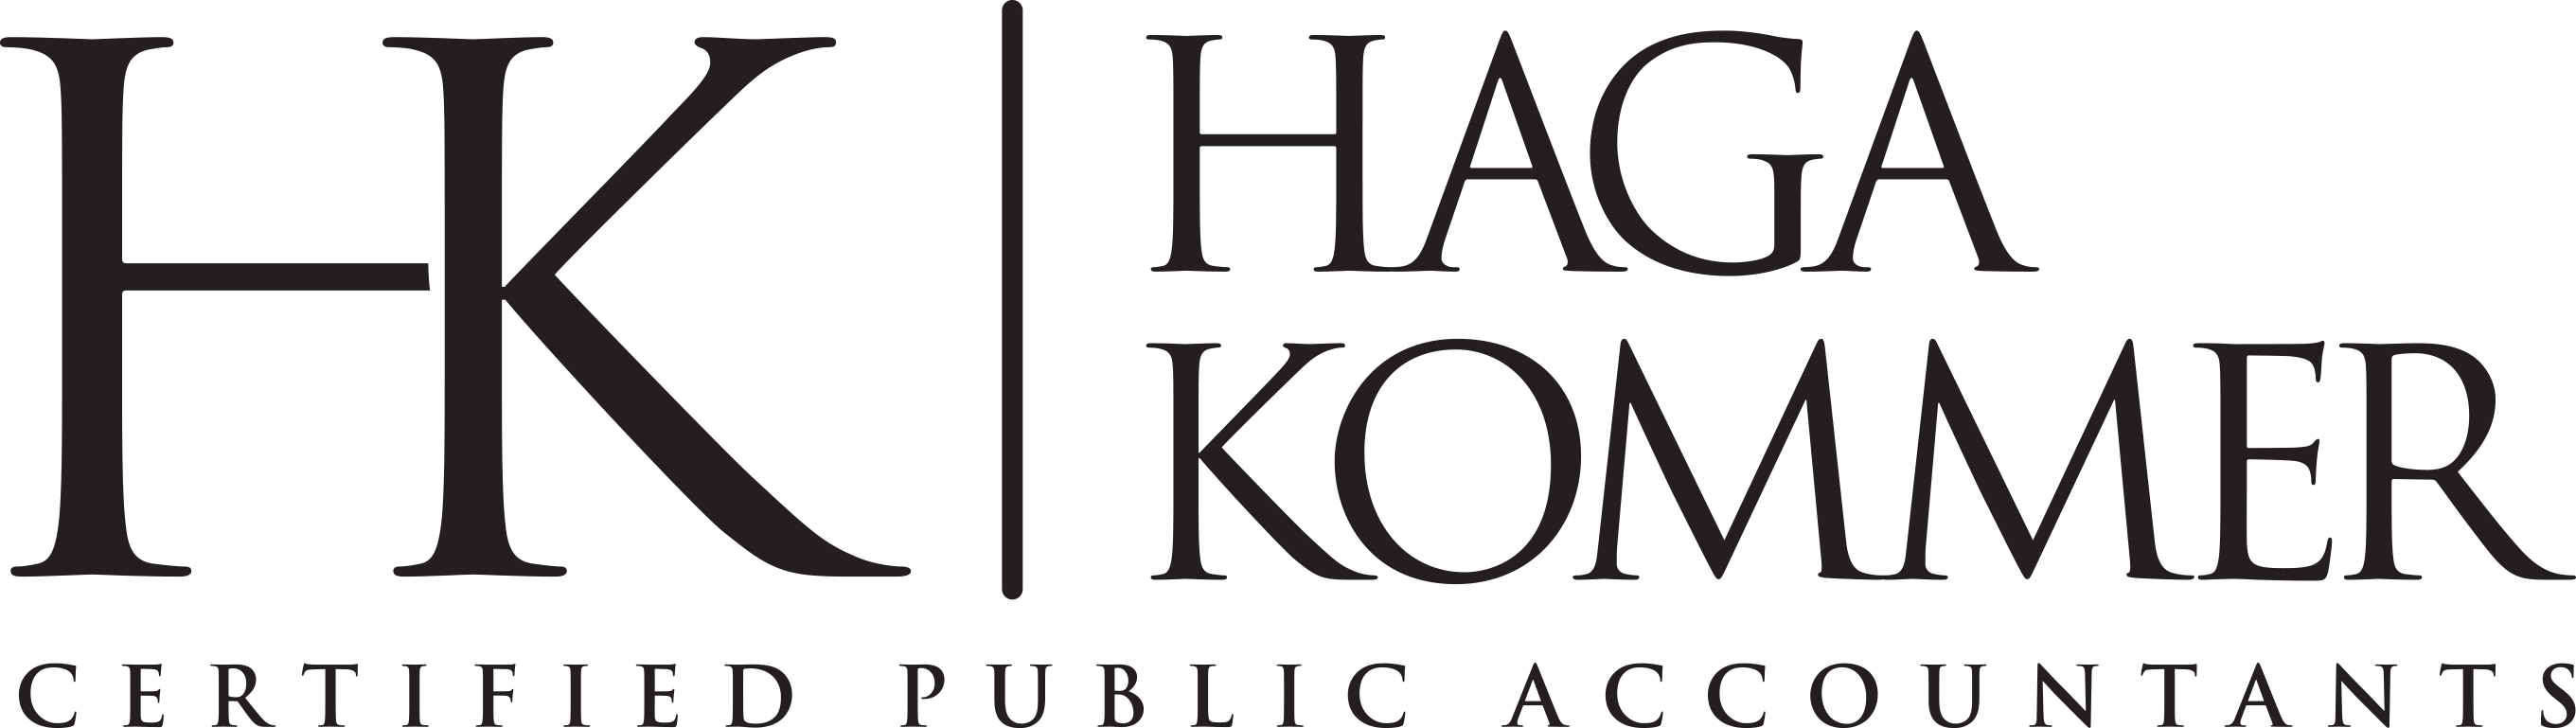 North Dakota CPA Firm | Frequently Asked Questions Page | Haga Kommer, Ltd.